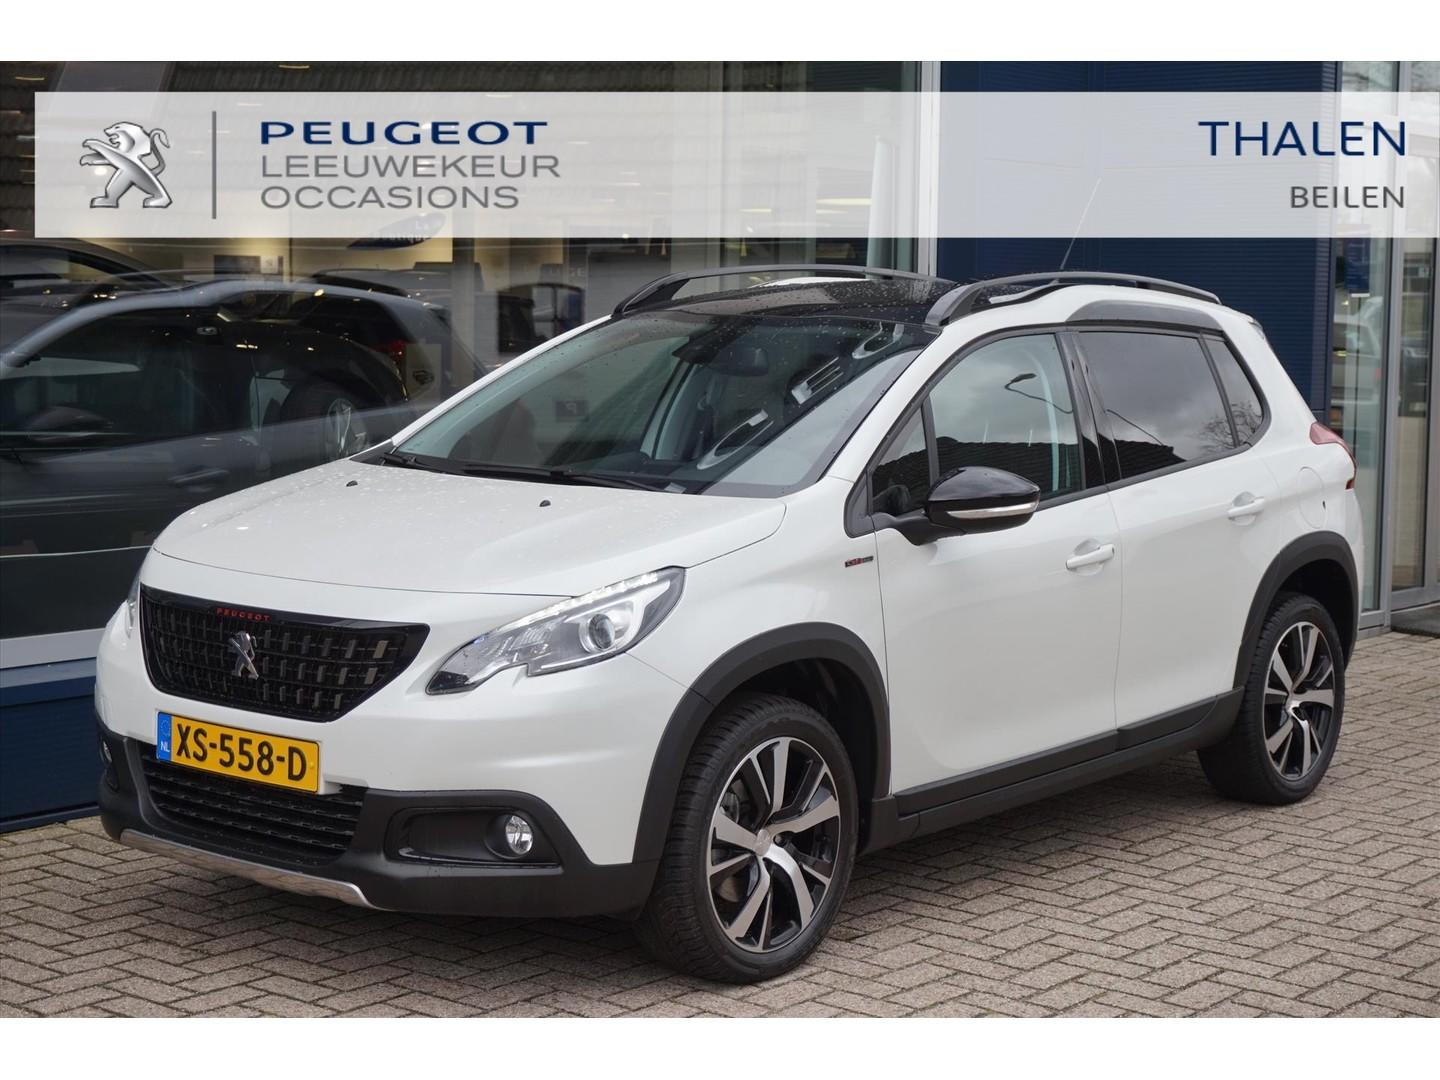 Peugeot 2008 Gt line turbo pano/navi/17inch all weather